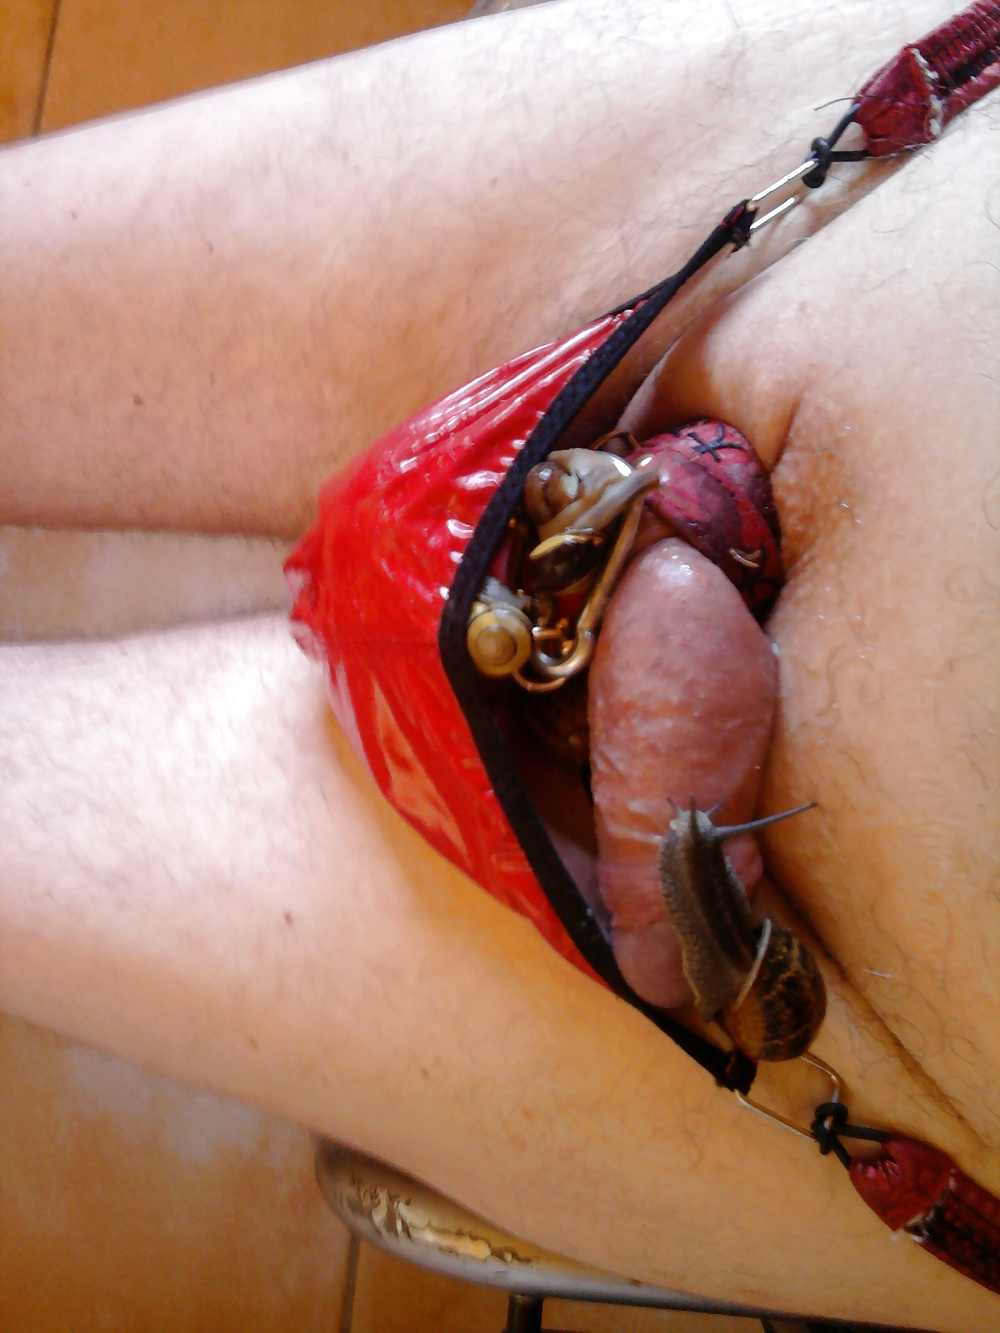 Cock torture insects